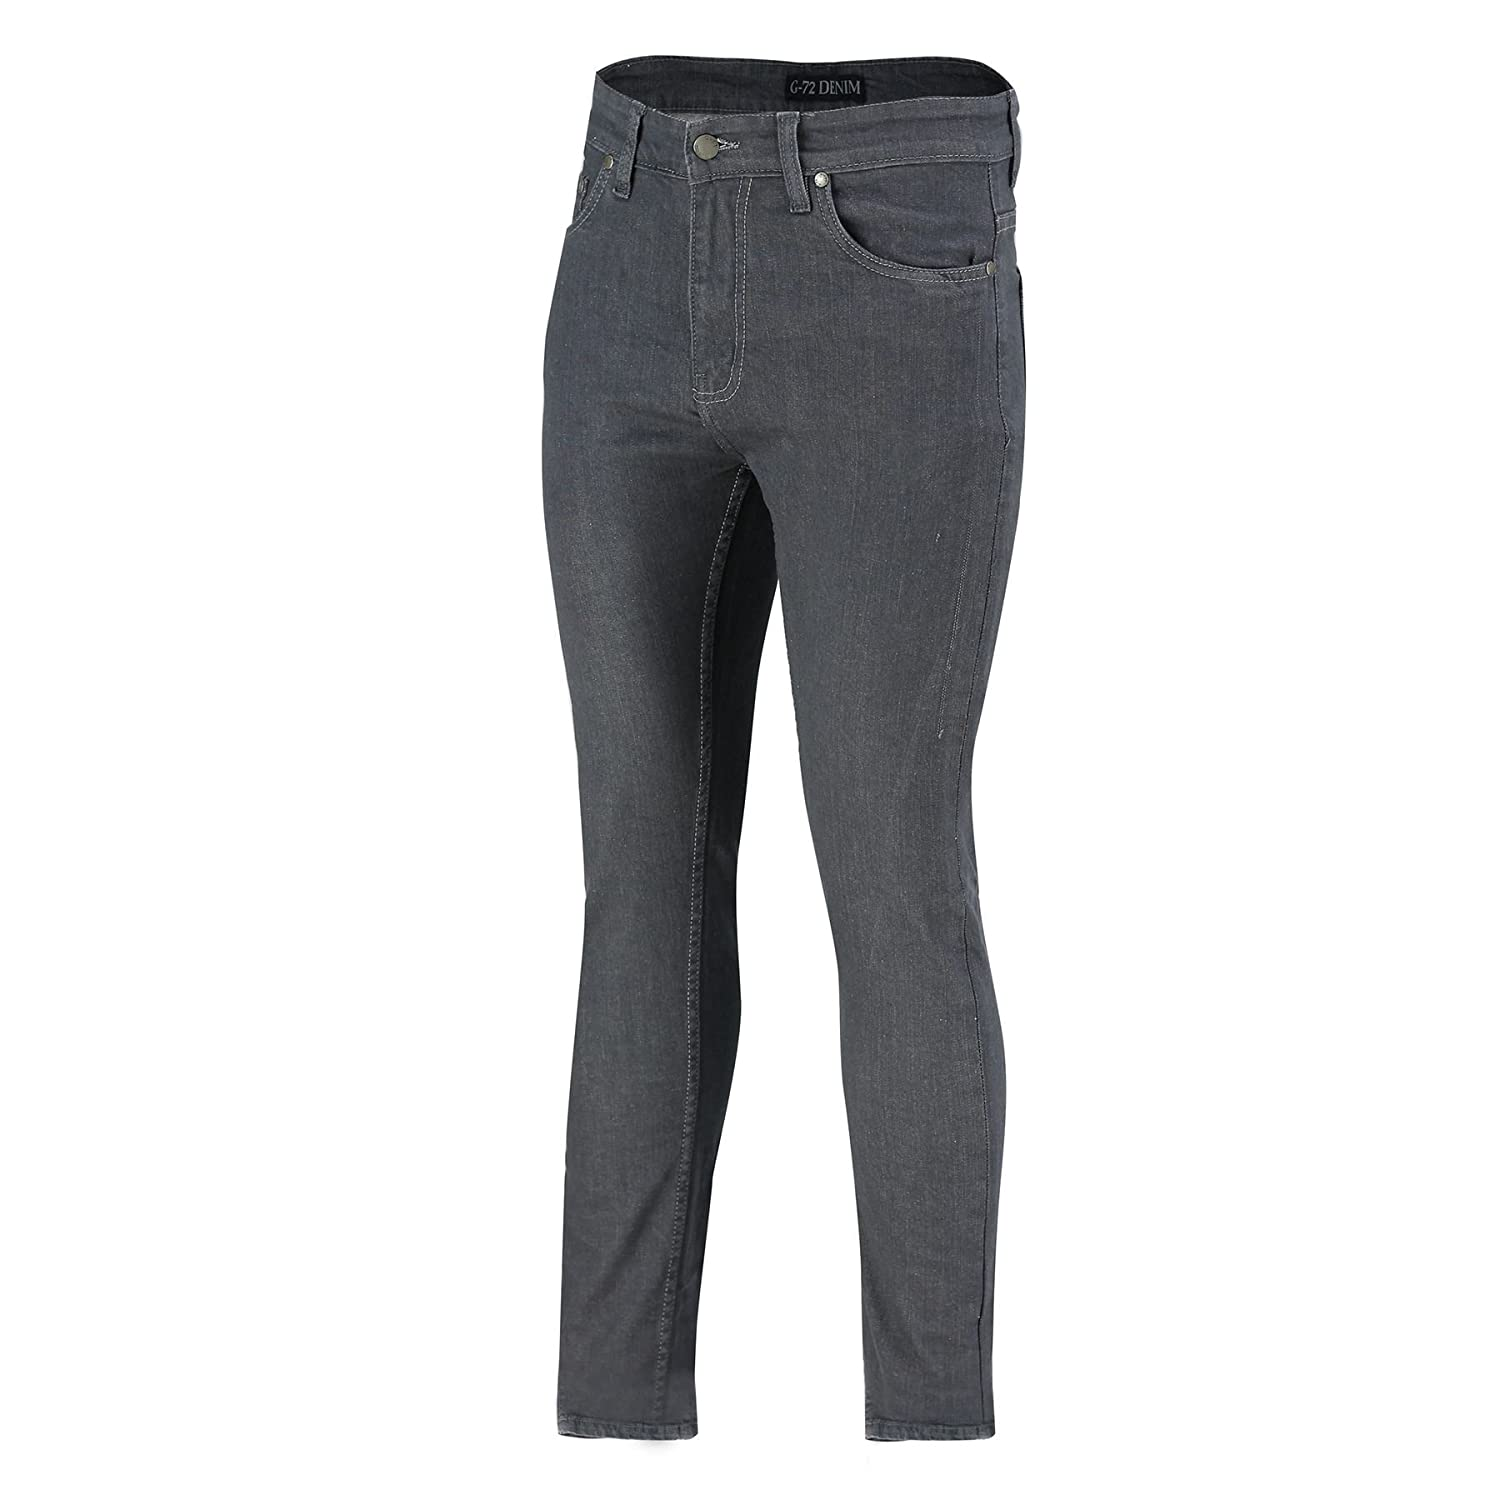 5b027531ada1 Mens New G72 Super Stretch Skinny Slim Fit Denim Jeans Pants Cotton Trousers   Amazon.co.uk  Clothing